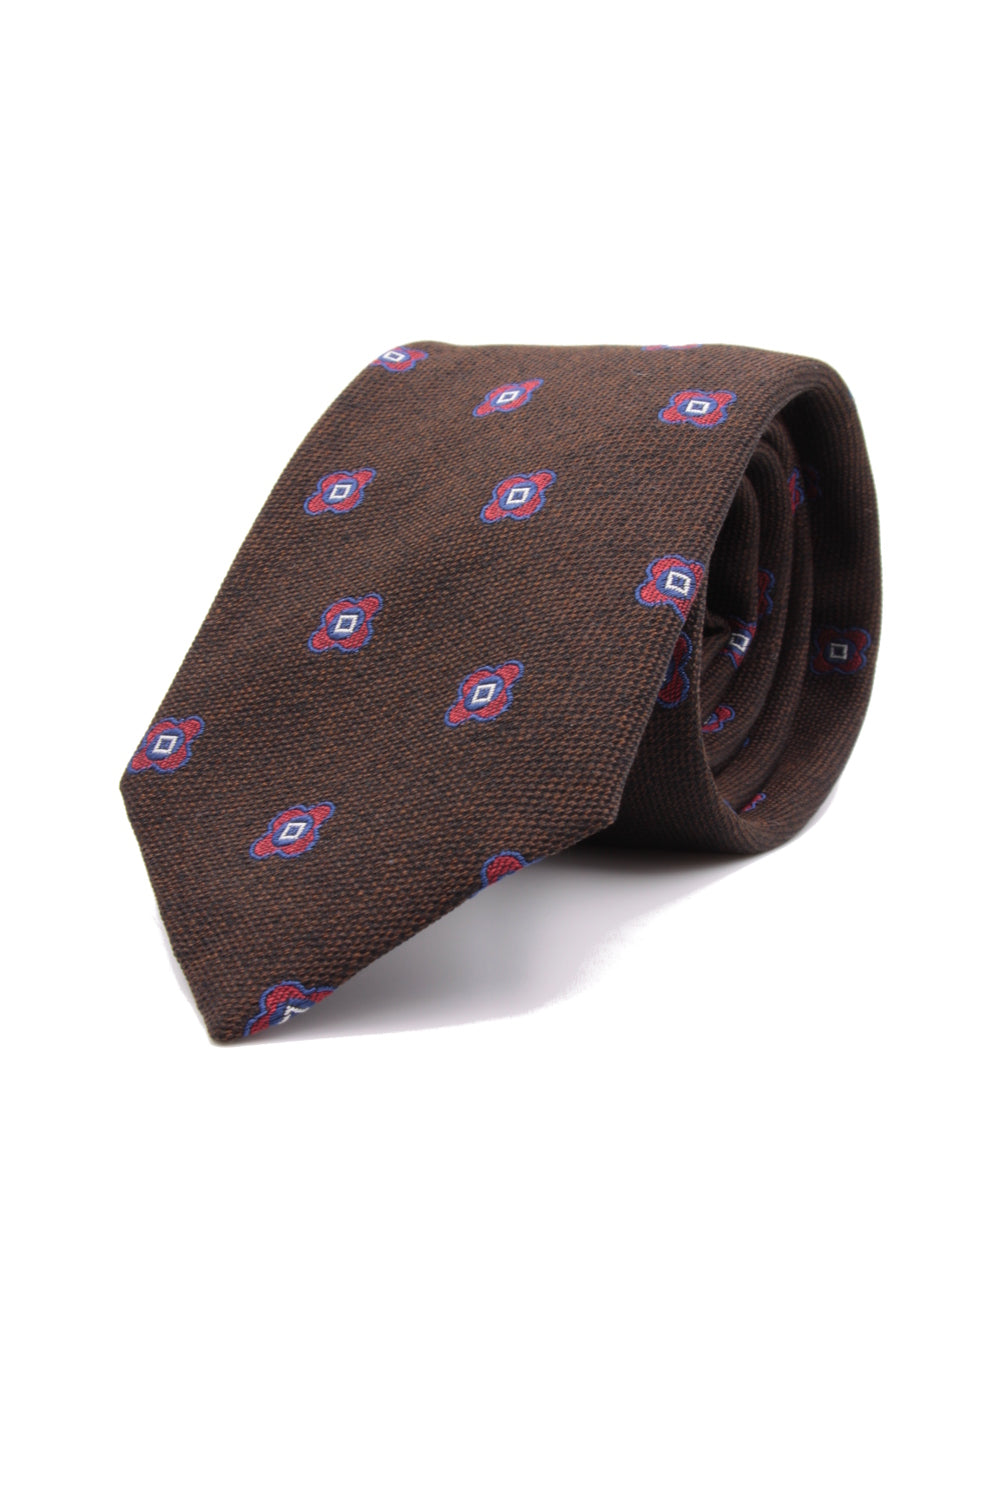 Brown, cherry and navy blue flower tie